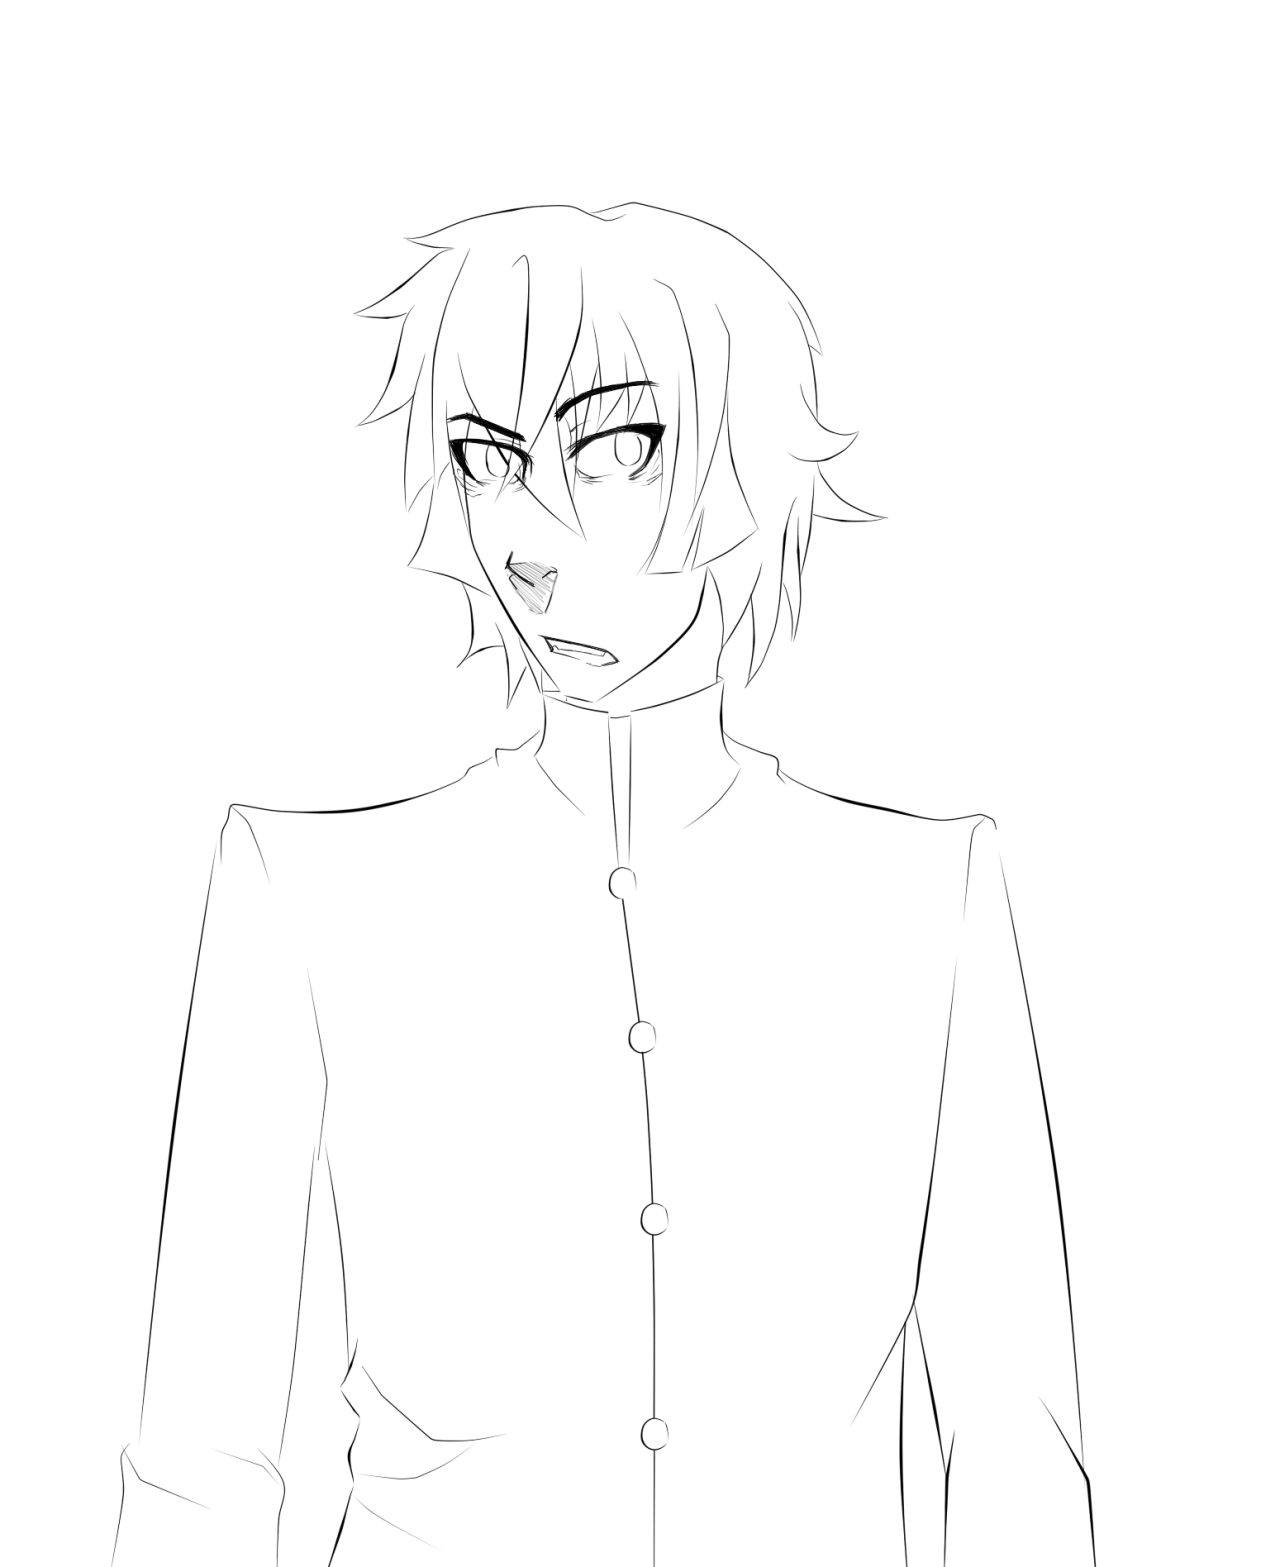 I took the mysterious sketch from yesterday and did the lineart. At first I wanted to do the typical Hyoubu smirk but everyone does that and I'm not like other girls so here's this facial expression instead.